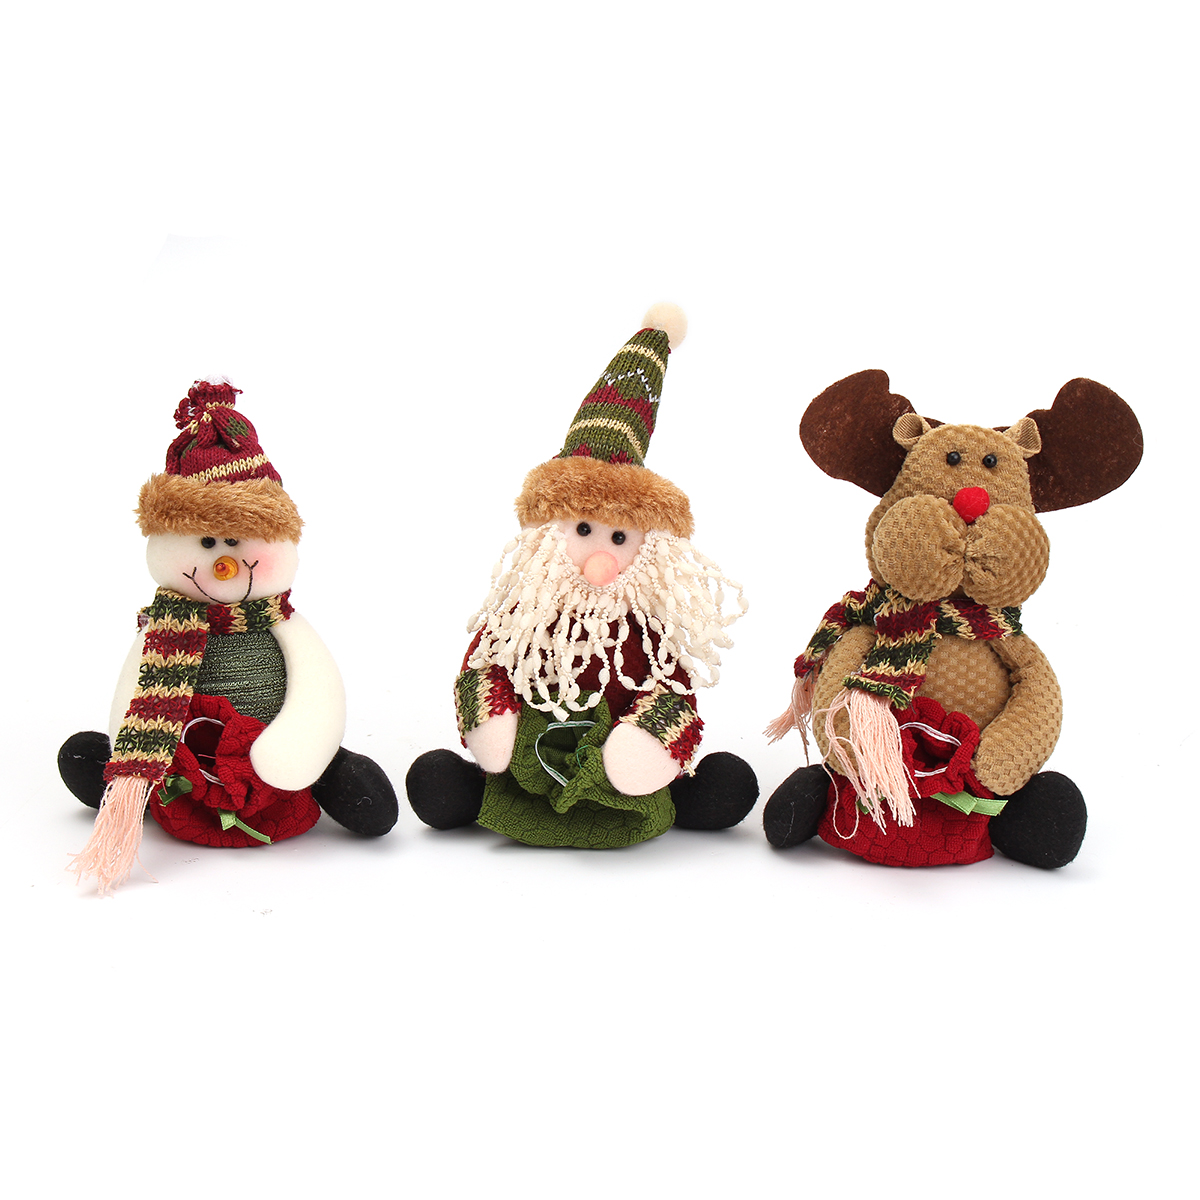 Christmas Candy Bag Tree Decor Ornaments Xmas Decor Santa Claus Snowman Reindeer - Photo: 2